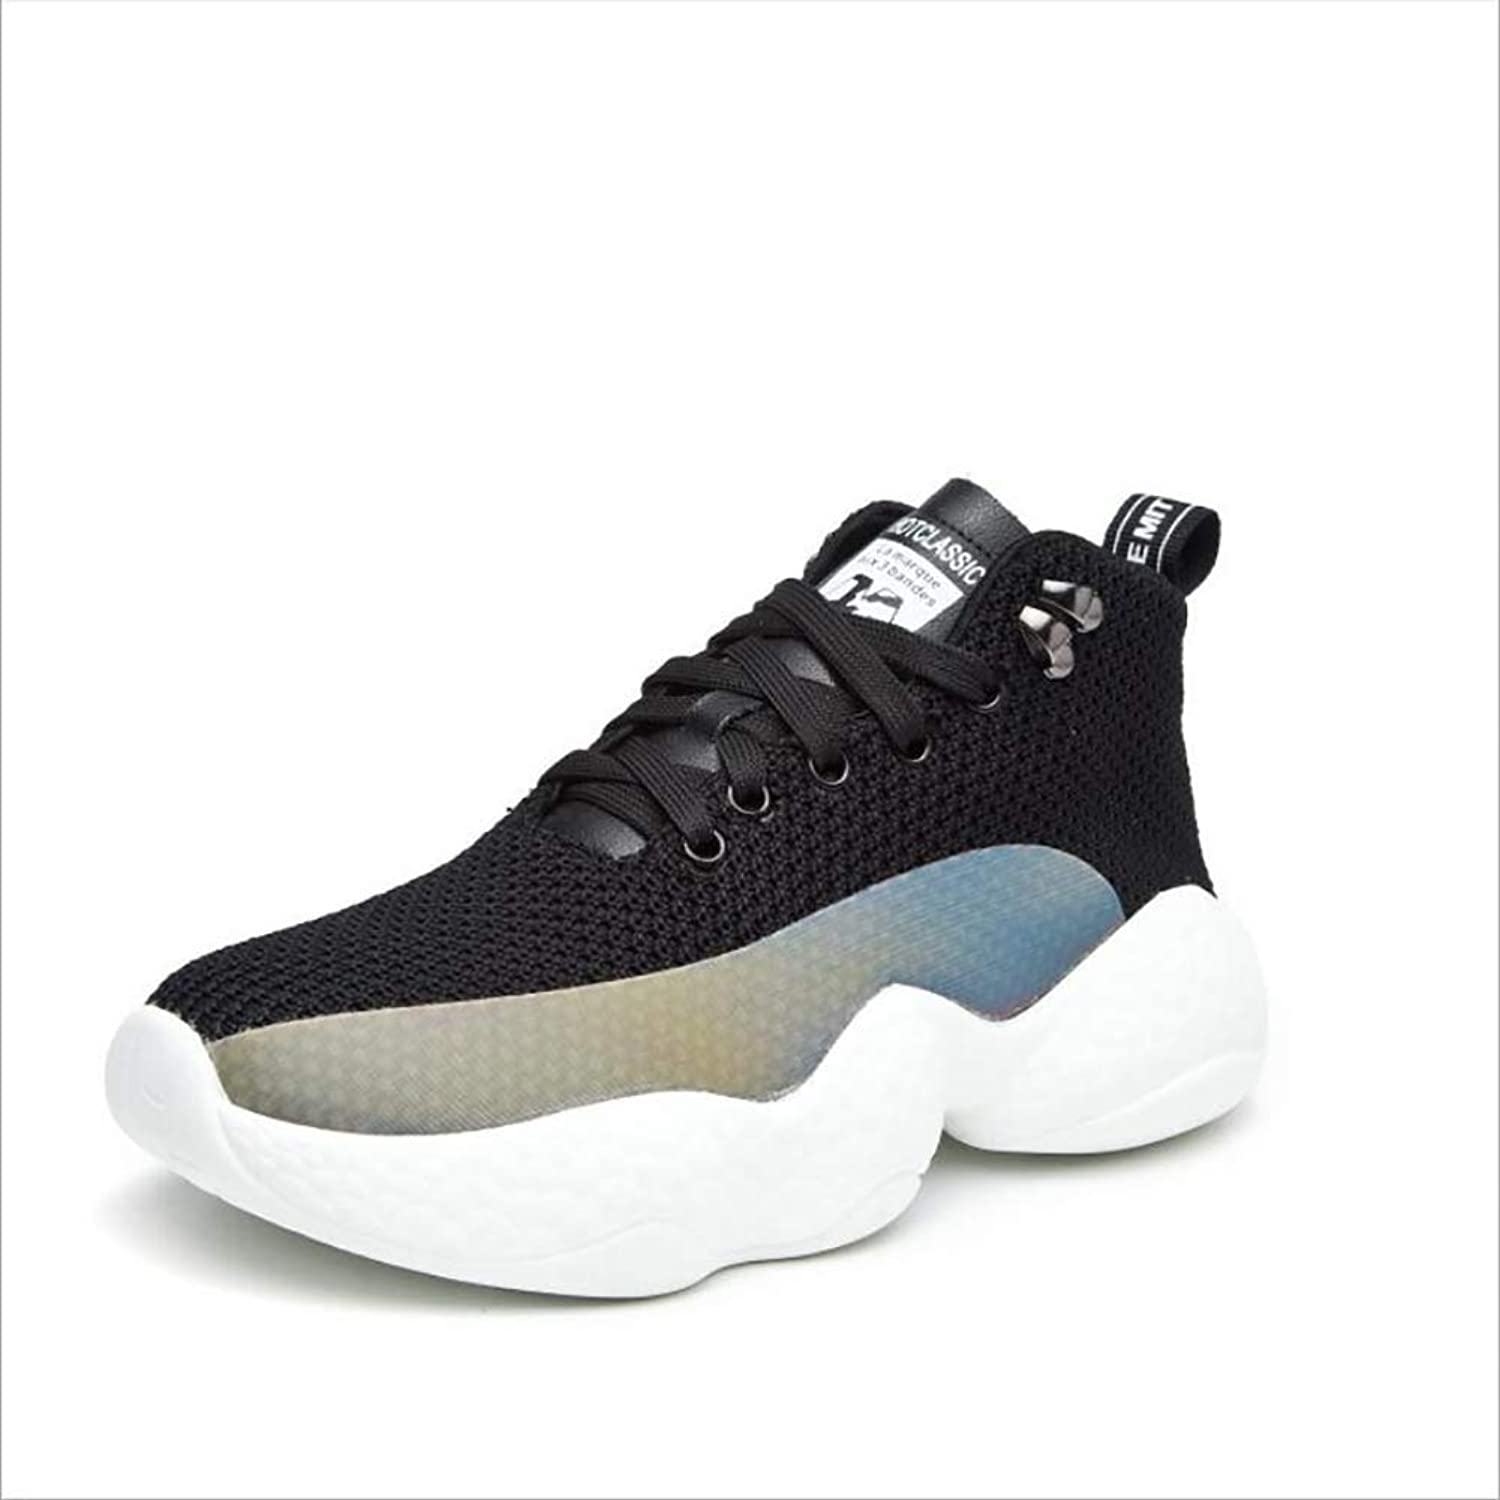 Women's Trainers shoes,Lightweight Damping Jogging shoes,Breathable Mesh Layer Leisure Athletic Sneakers,Spring Summer Fall Hiking shoes